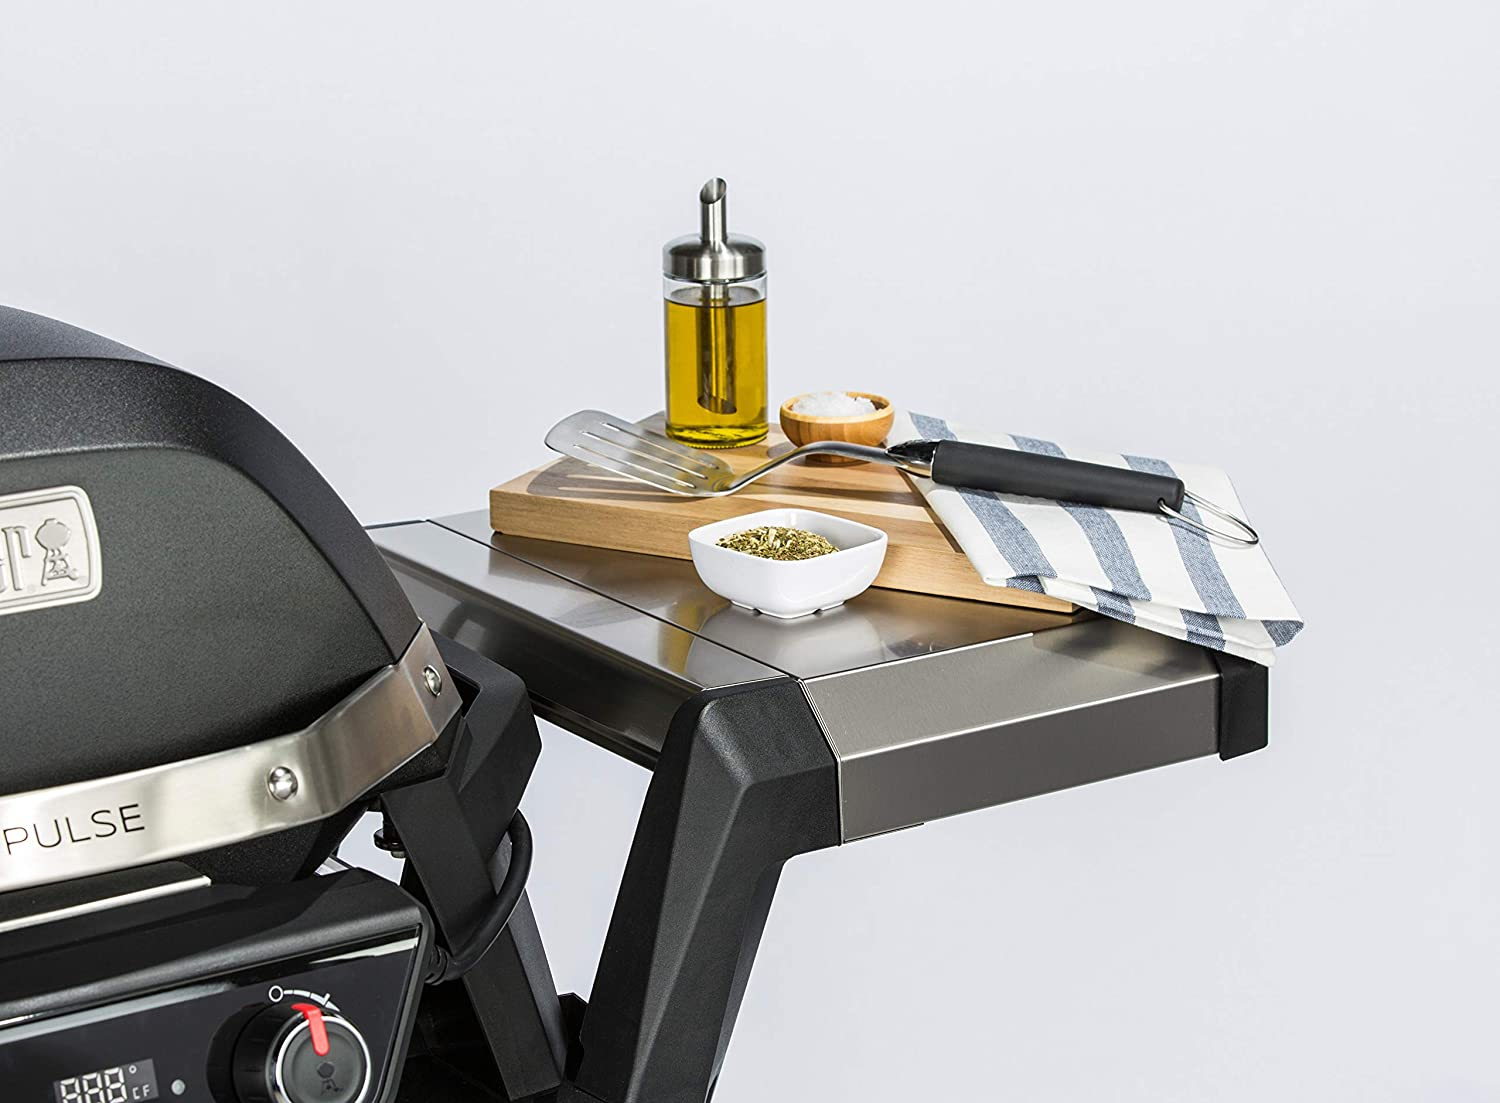 Weber 6539 Trolley Barbecue/Grill – Accessory Accessories for  Barbecue/Grill: Amazon.co.uk: Kitchen & Home